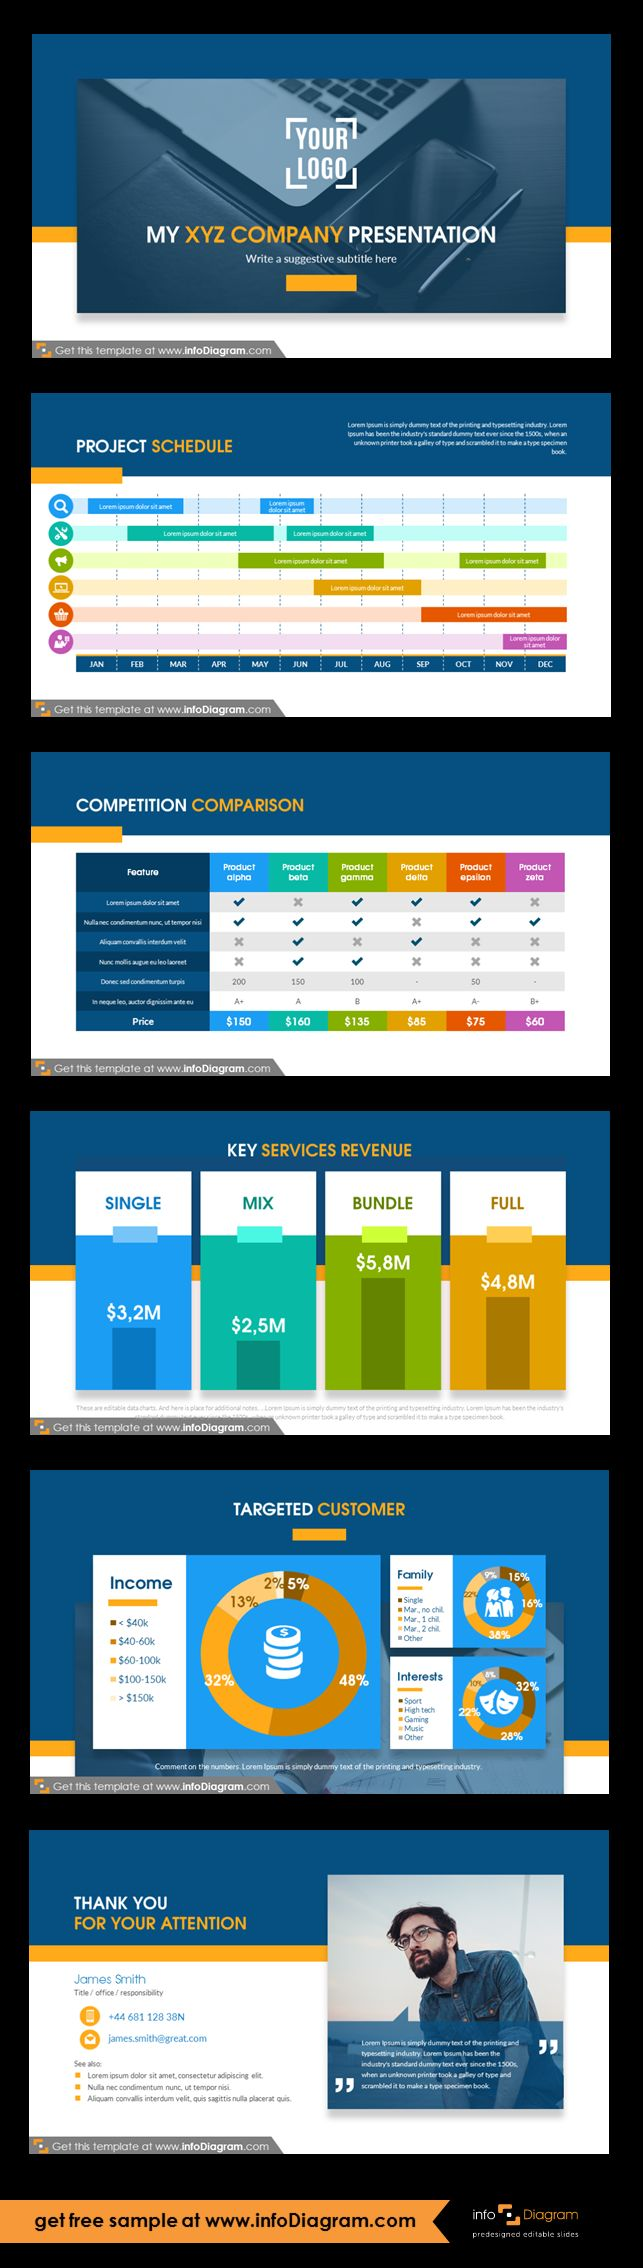 PowerPoint template for middle size or bigger corporate company. Source slides for powerful creating business presentation or a company overview. Project schedule - timeline. Competition comparison table. Services revenue information. Slides with targeted customer - detailed information and profile: income, gender, age, work, interests. Final slide with contact information. Fully editable style, size and colors.